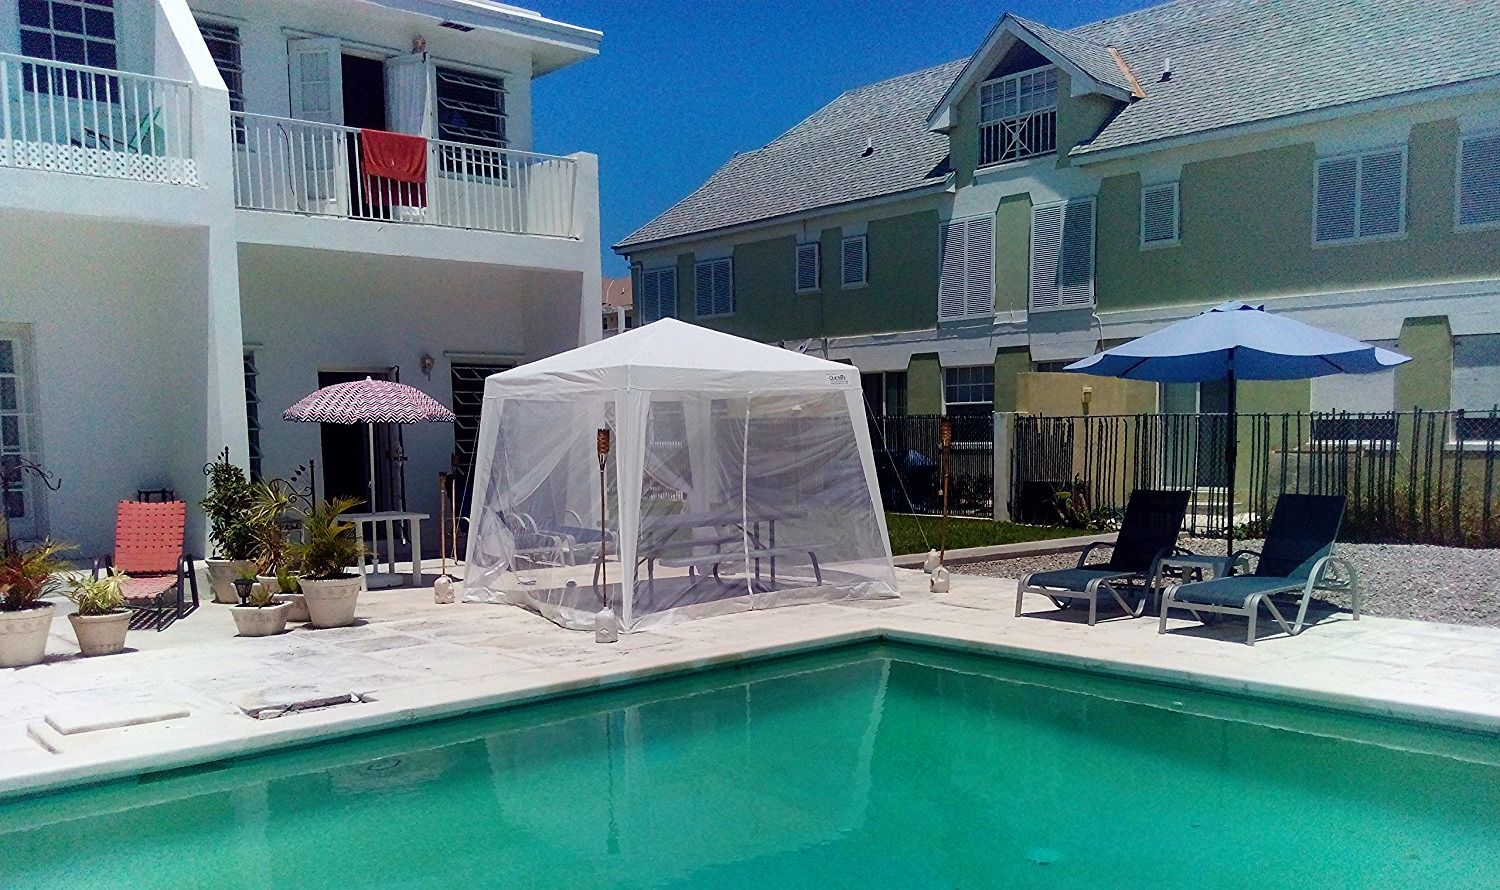 10'x10' Trapezoid White Screen Tent With Enclosed Mesh